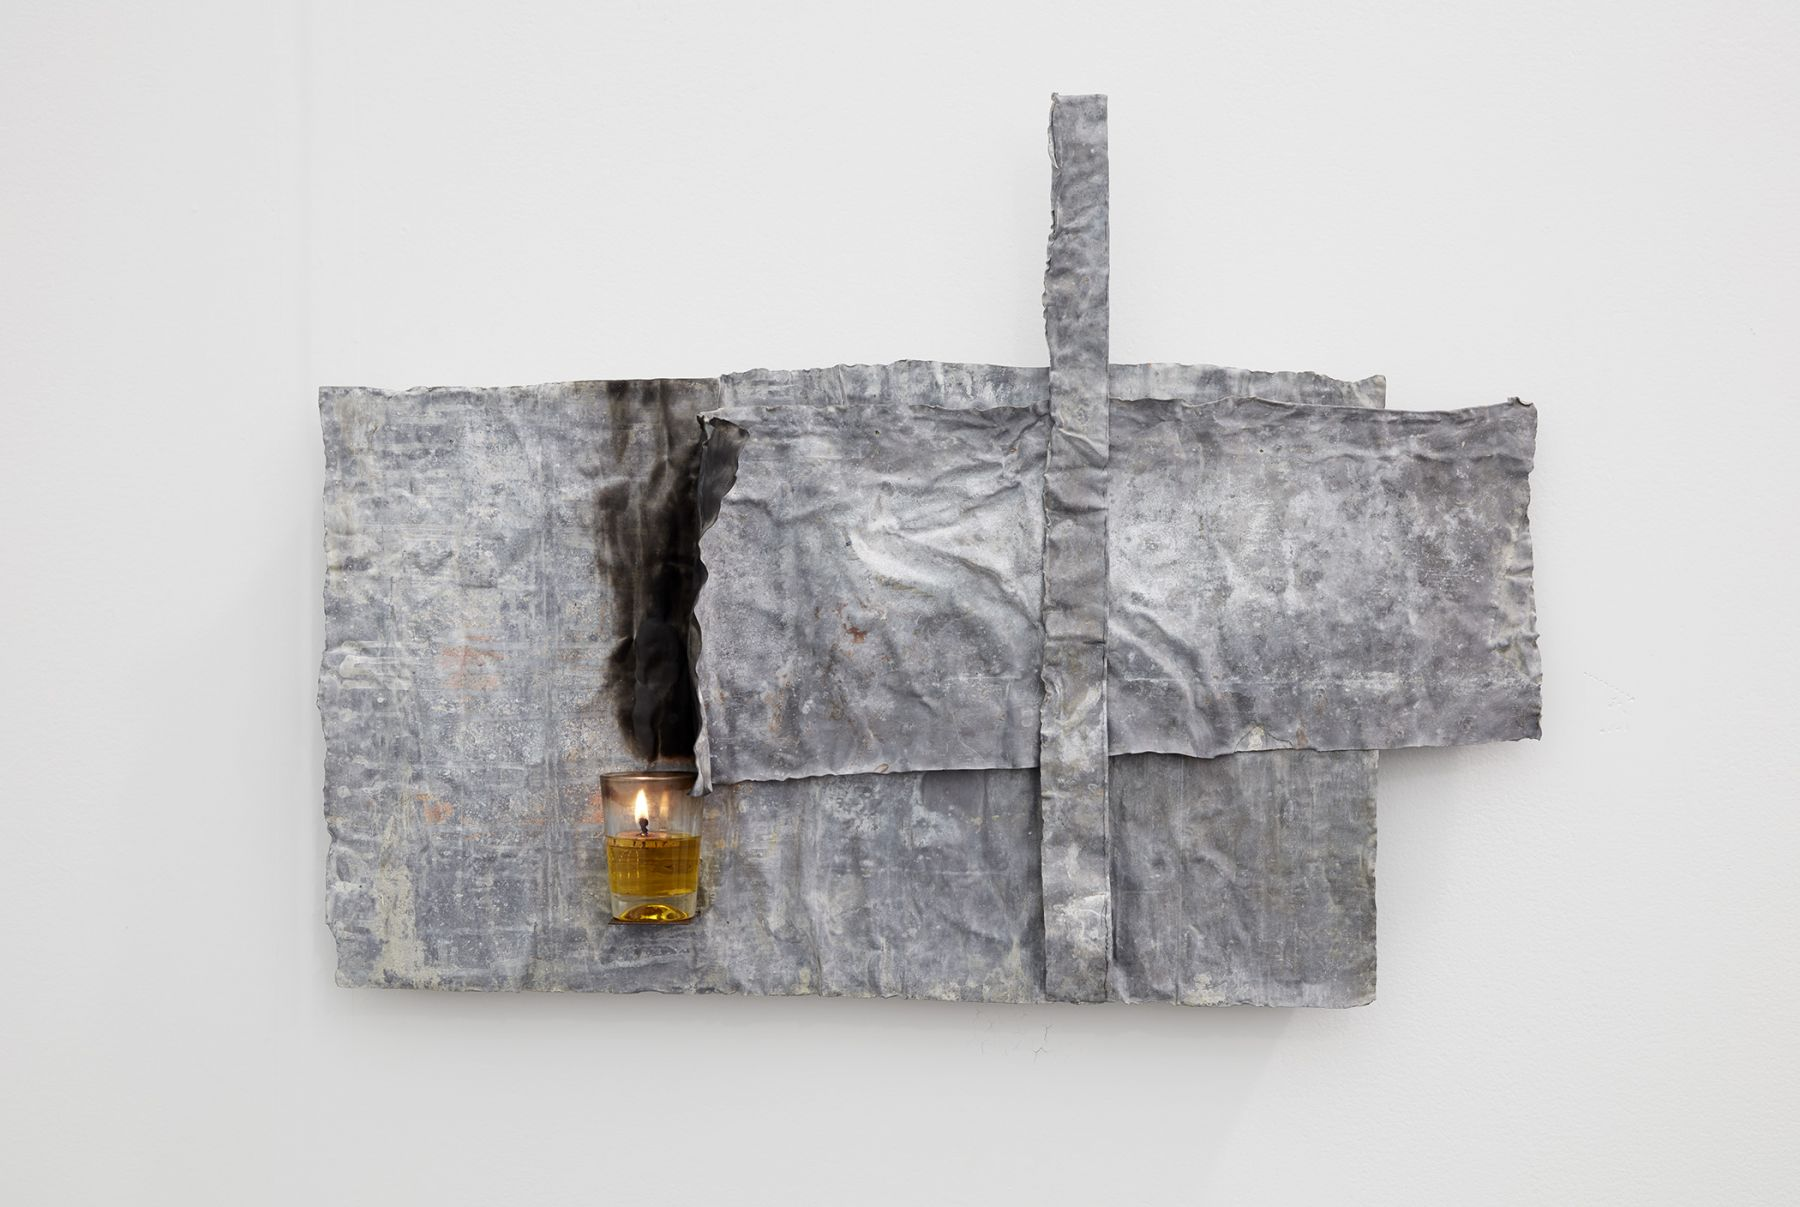 a lead and candle work of art by Italian artist Pier Paolo Calzolari